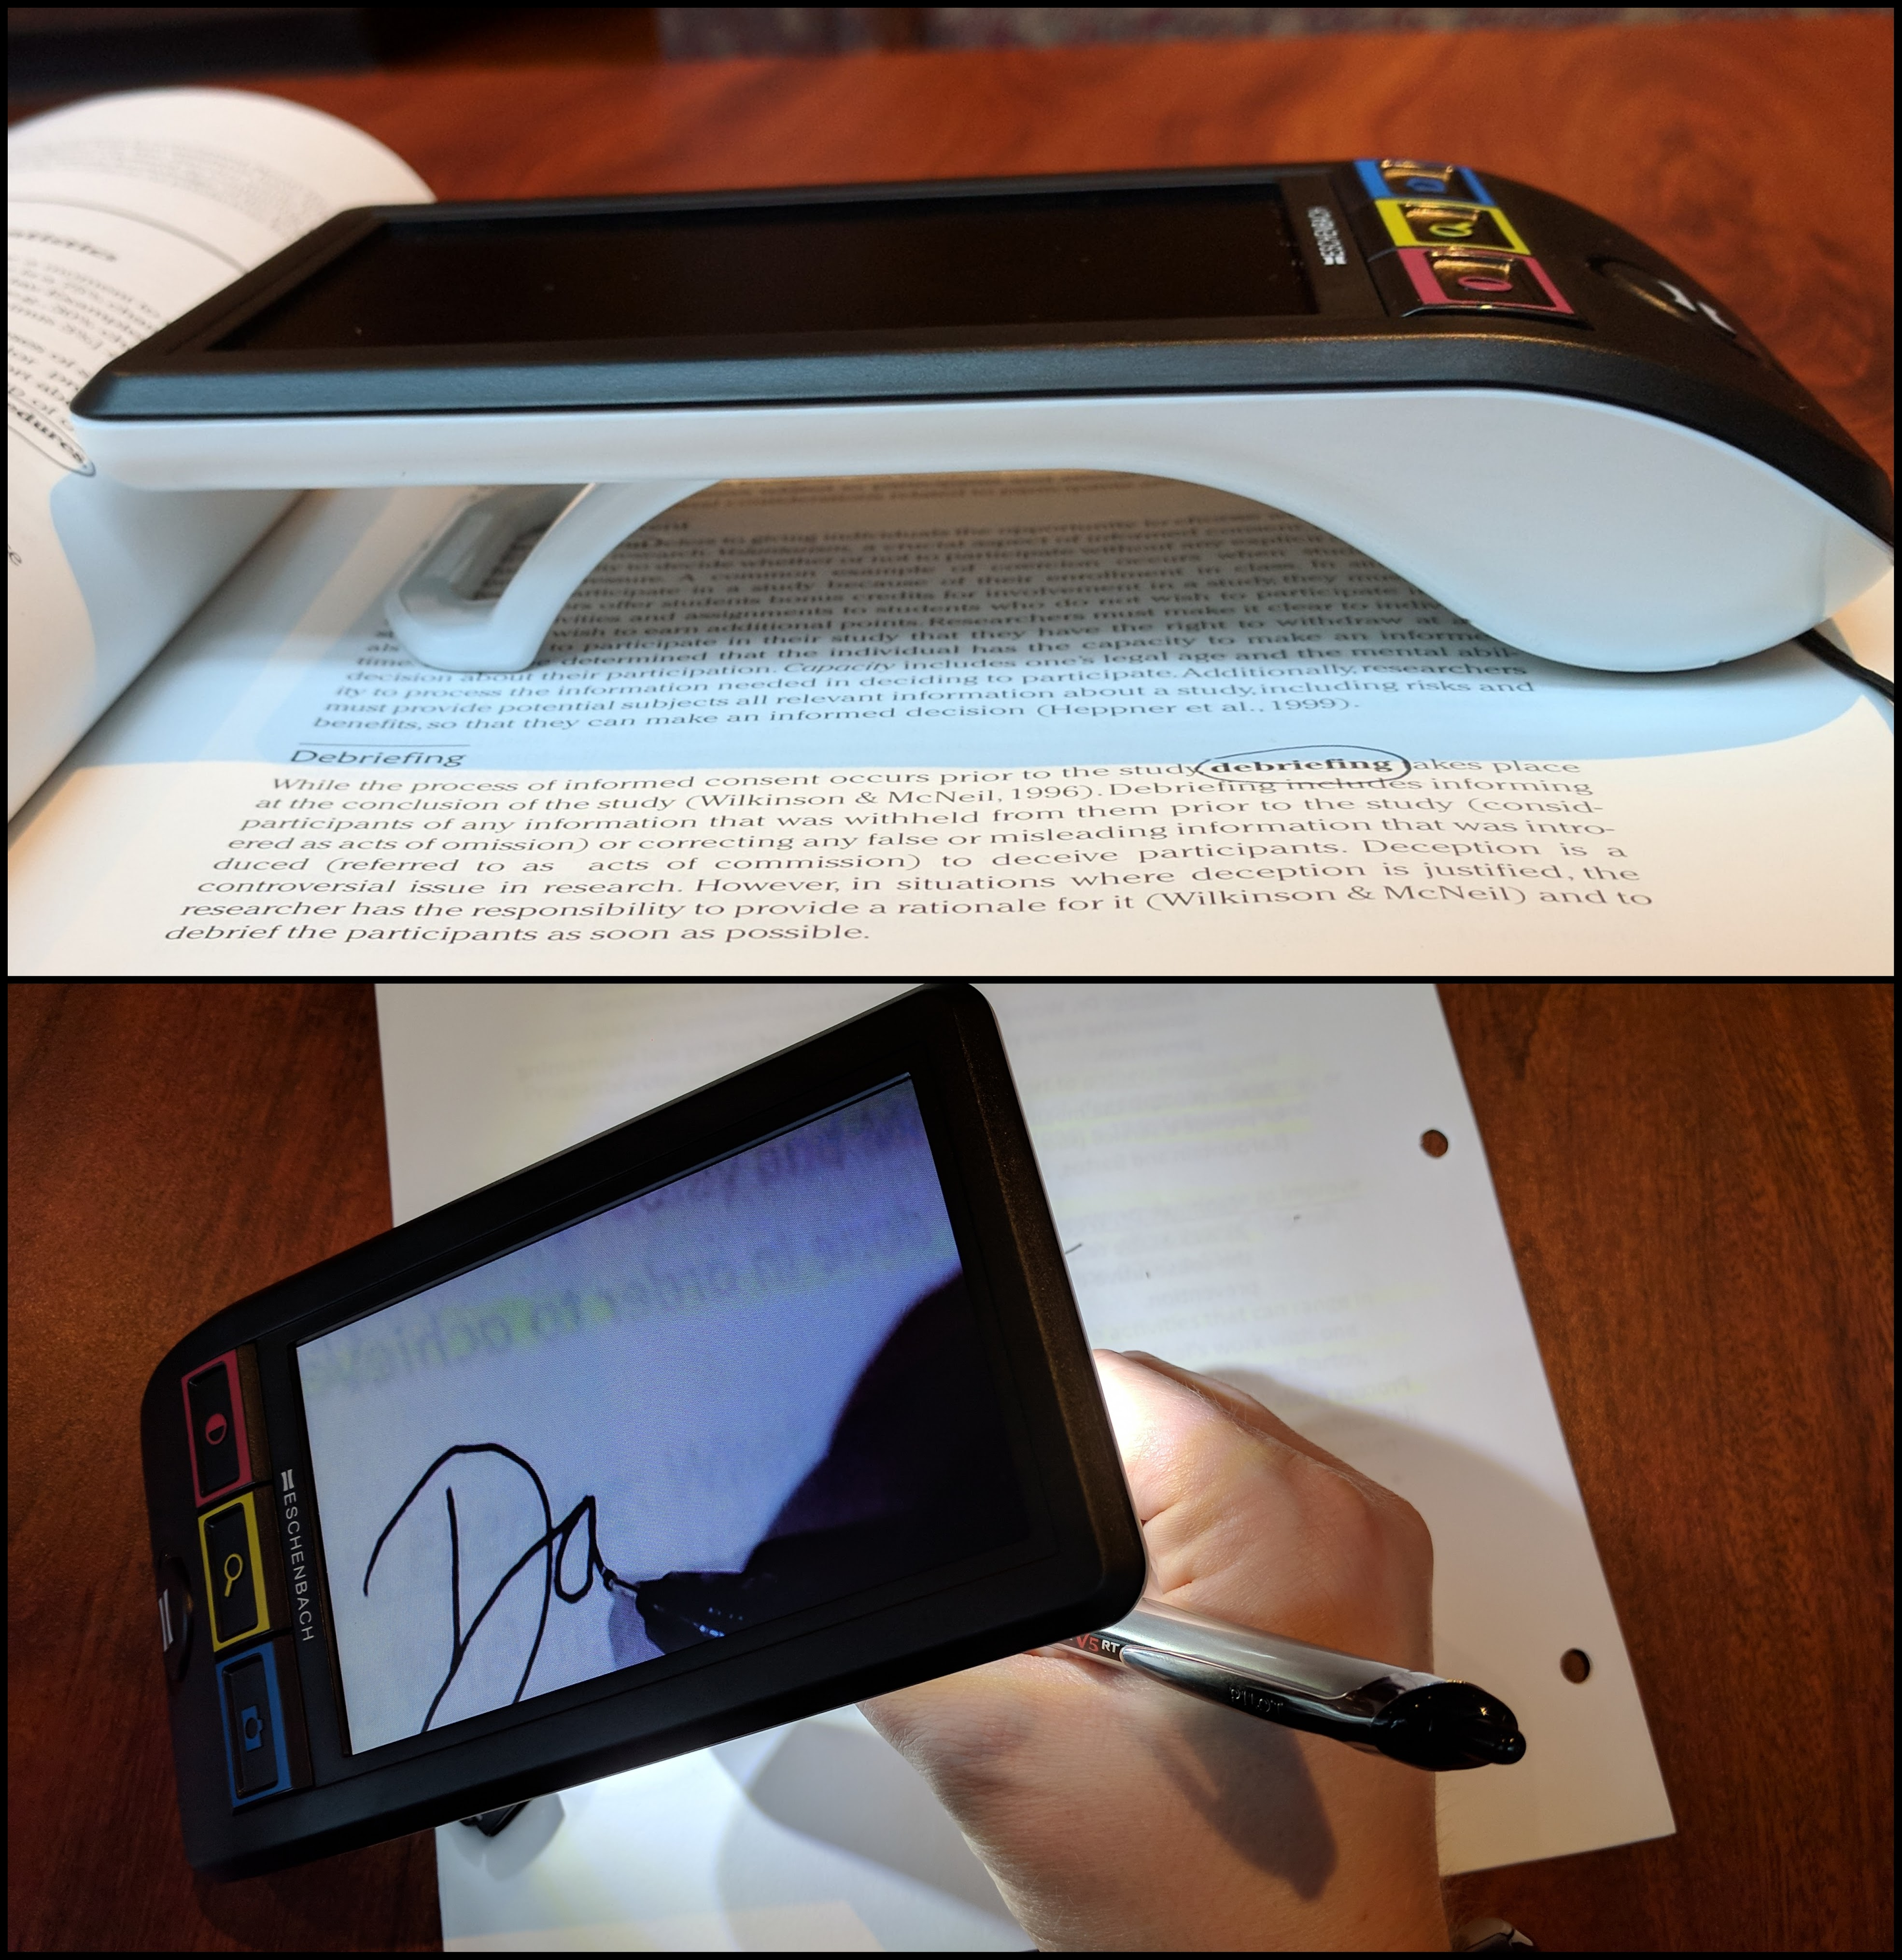 Am image containing two separate photos. One shows the Smartlux on a textbook in the typical reading position with the stand extended all the way. The second shows the stand in its first open position at an angle as a hand is writing below the camera. A partial signature is visible on the screen.